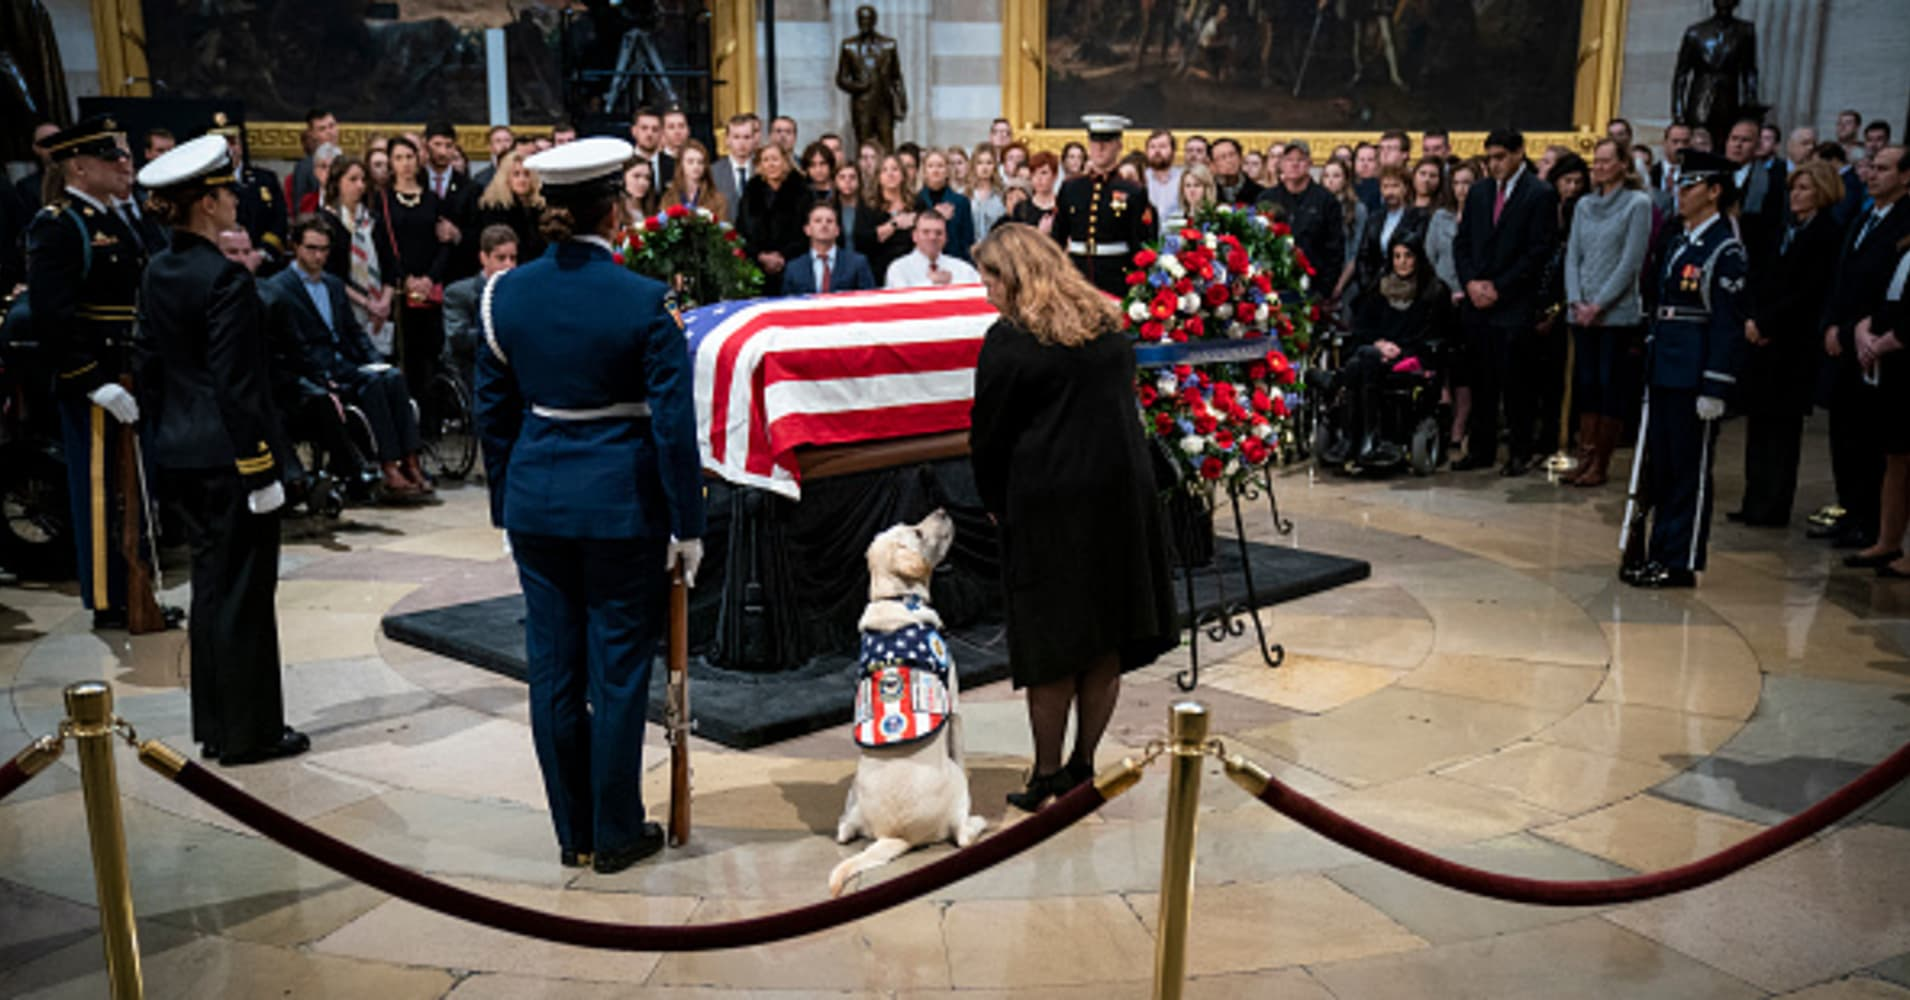 Mourners line up to honor former President Bush at US Capitol